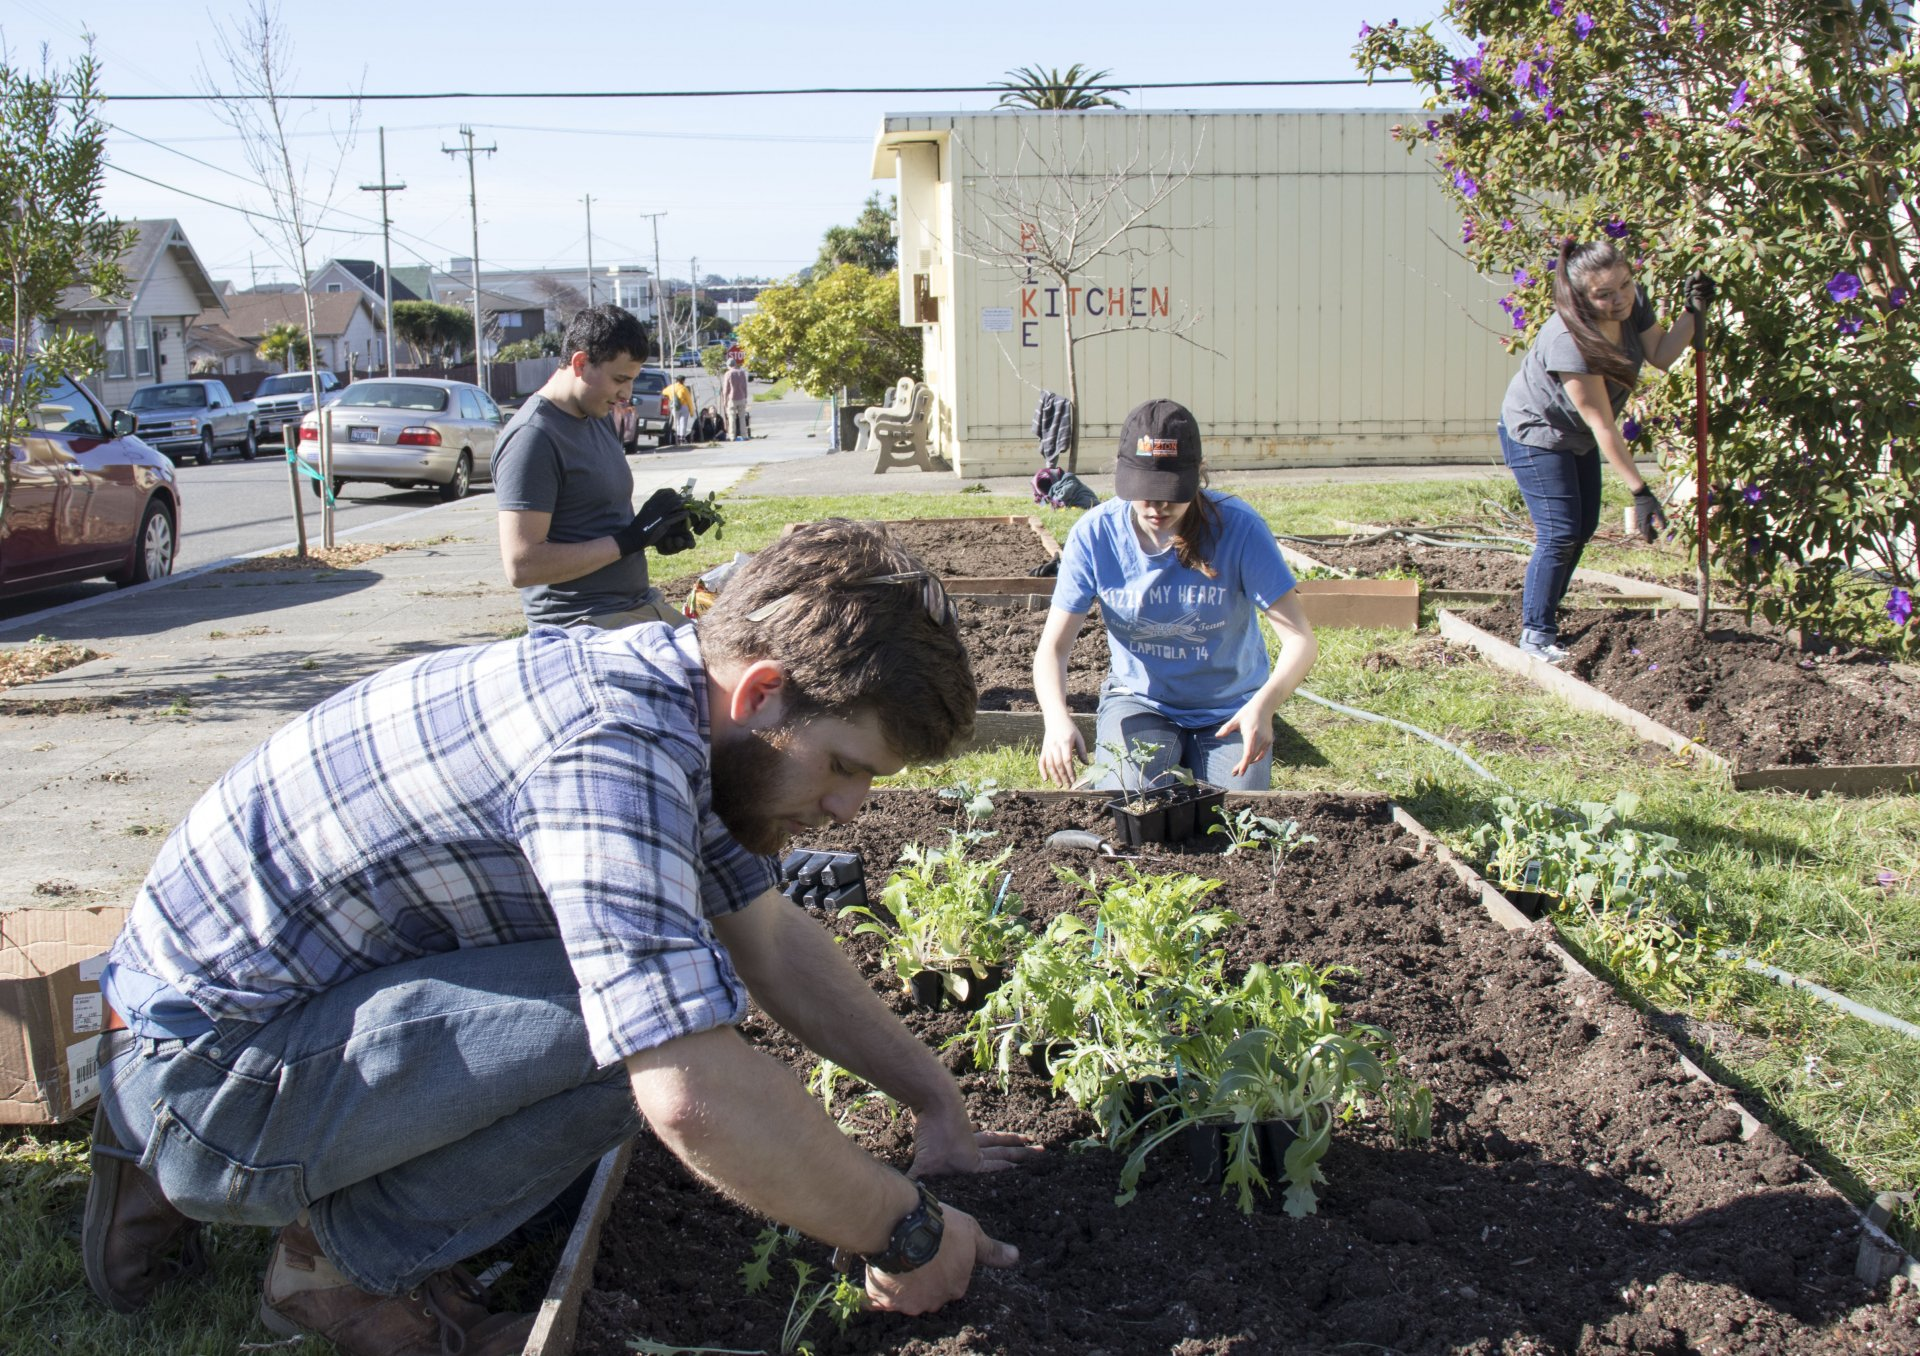 Dean Shearer (foreground), Mike Magana (background), Darby Lawrence (center) and Julia Montes-Muozo (right) planting various vegetables. Photo by Luis Lopez.